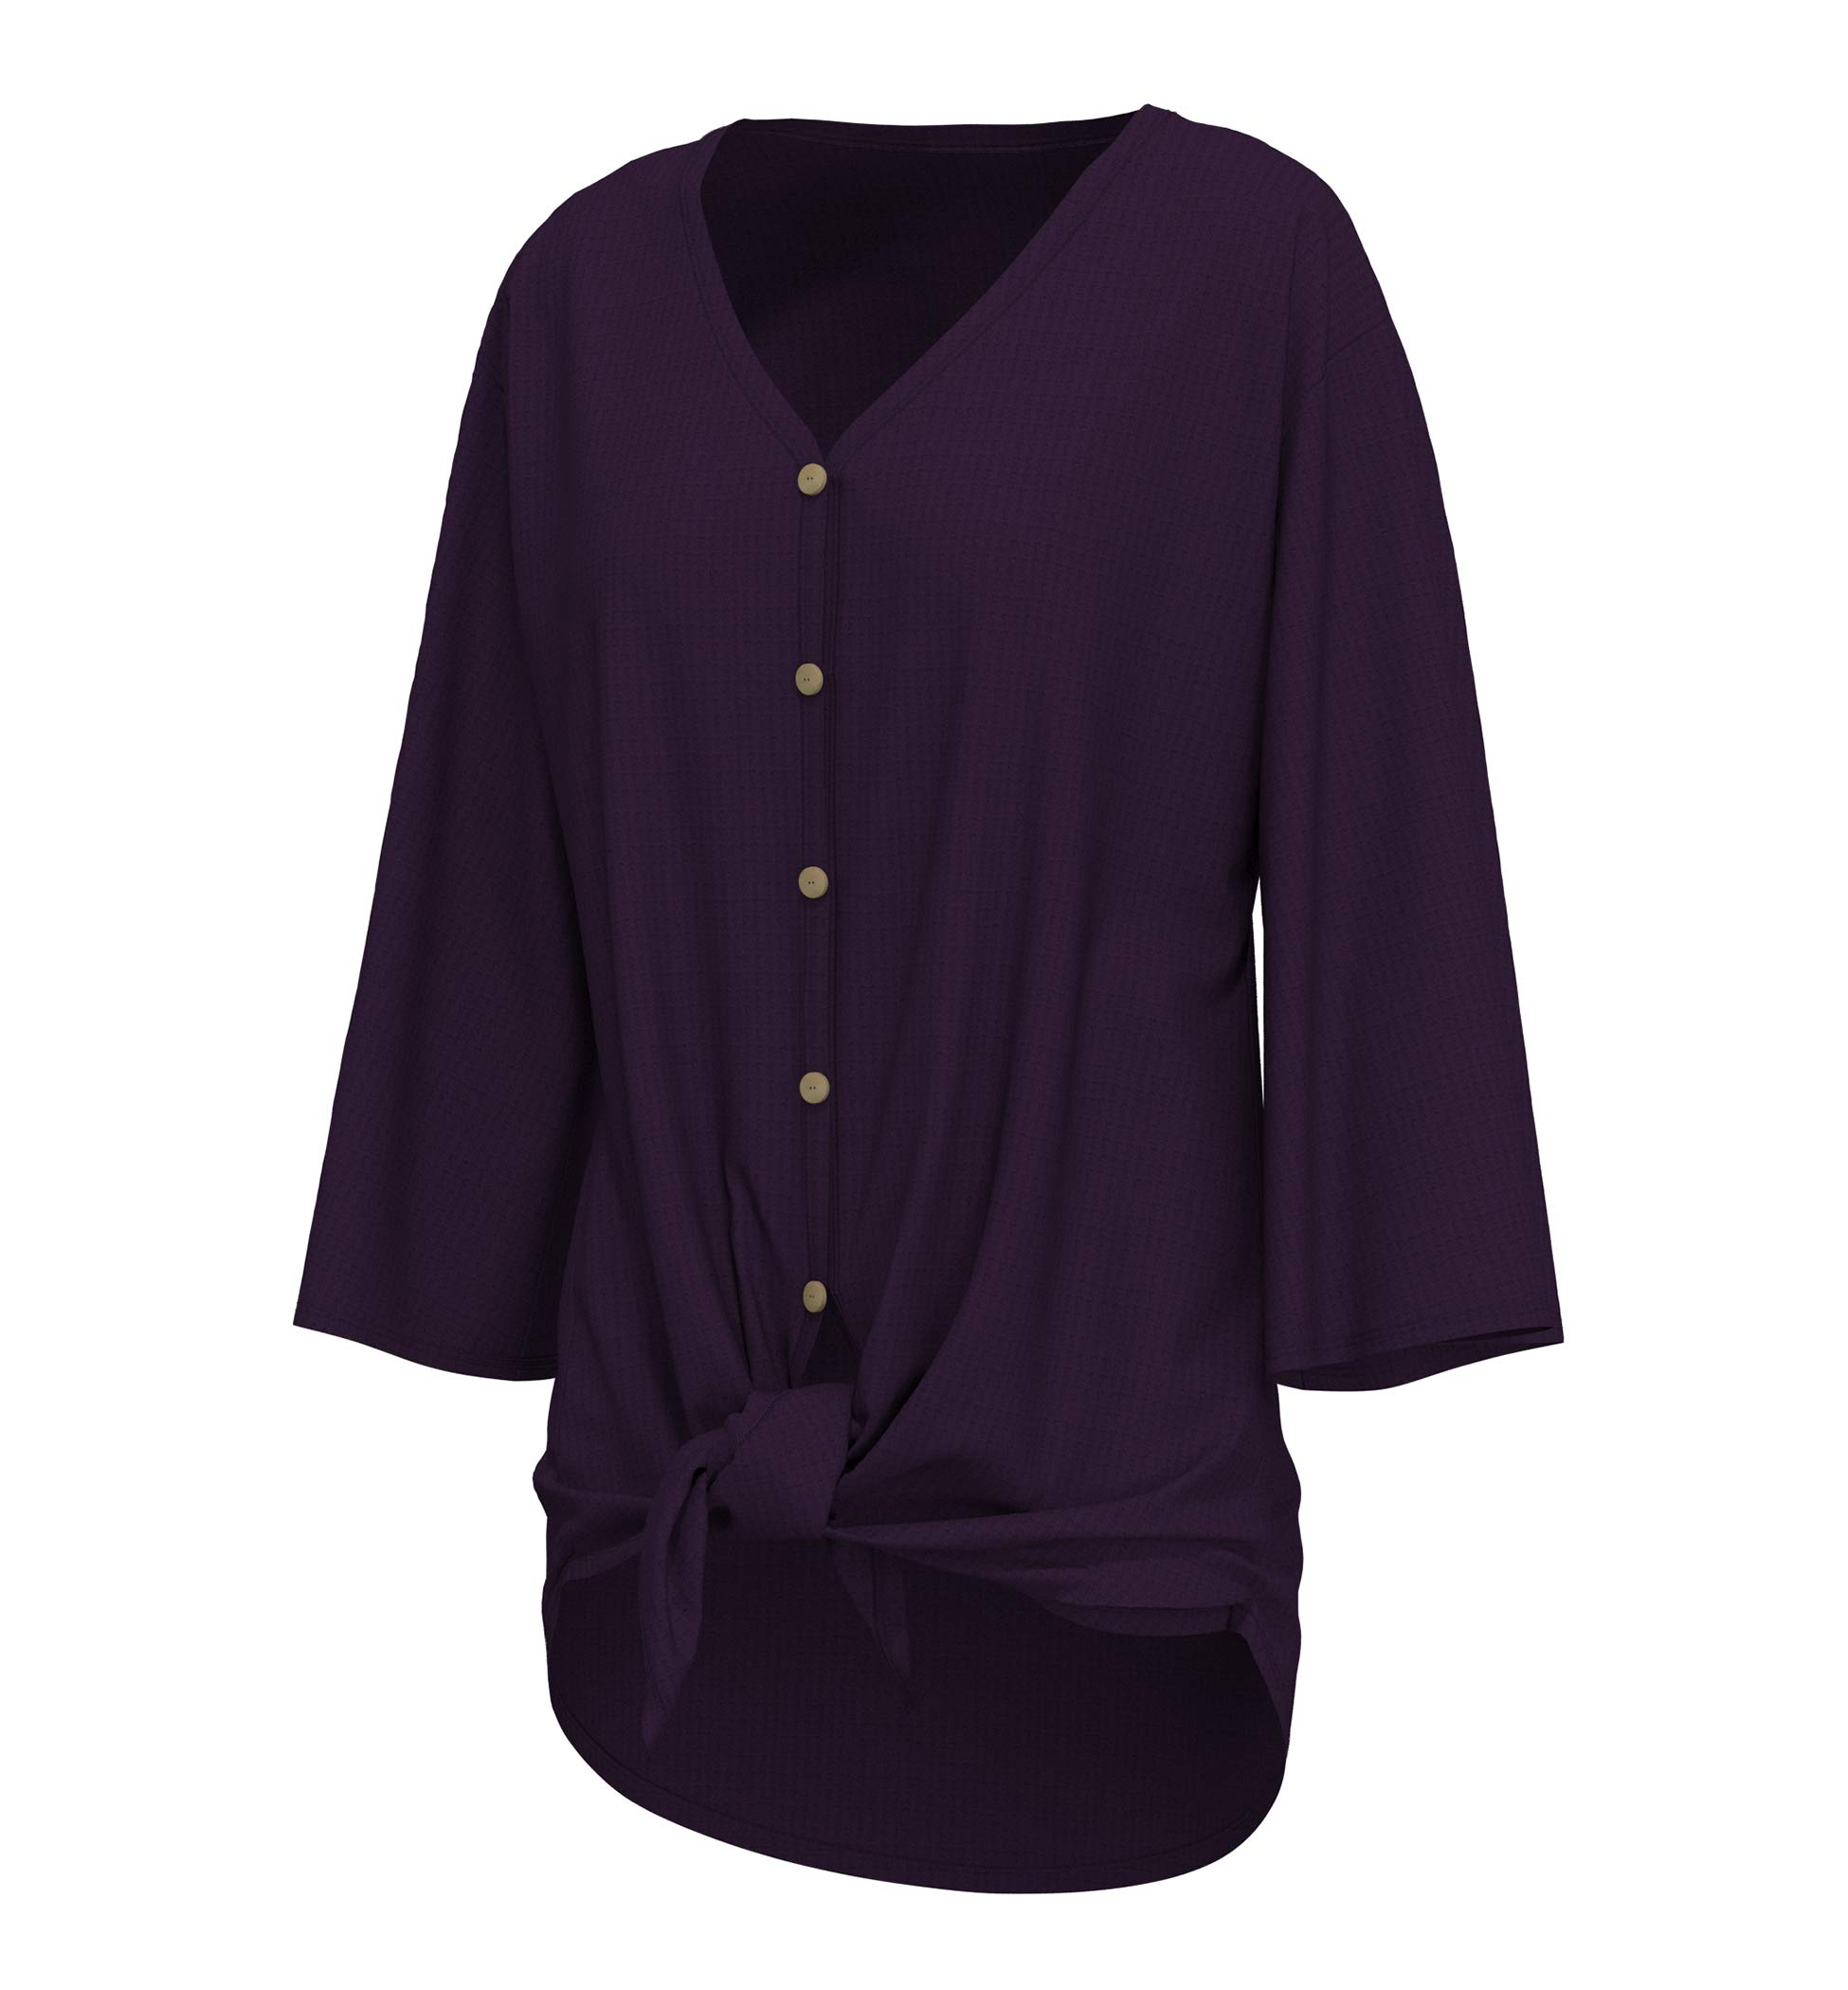 cokuco P1033 Womens Waffle Knit Tie Knot Front Loose Fit Casual Top Eggplant Large